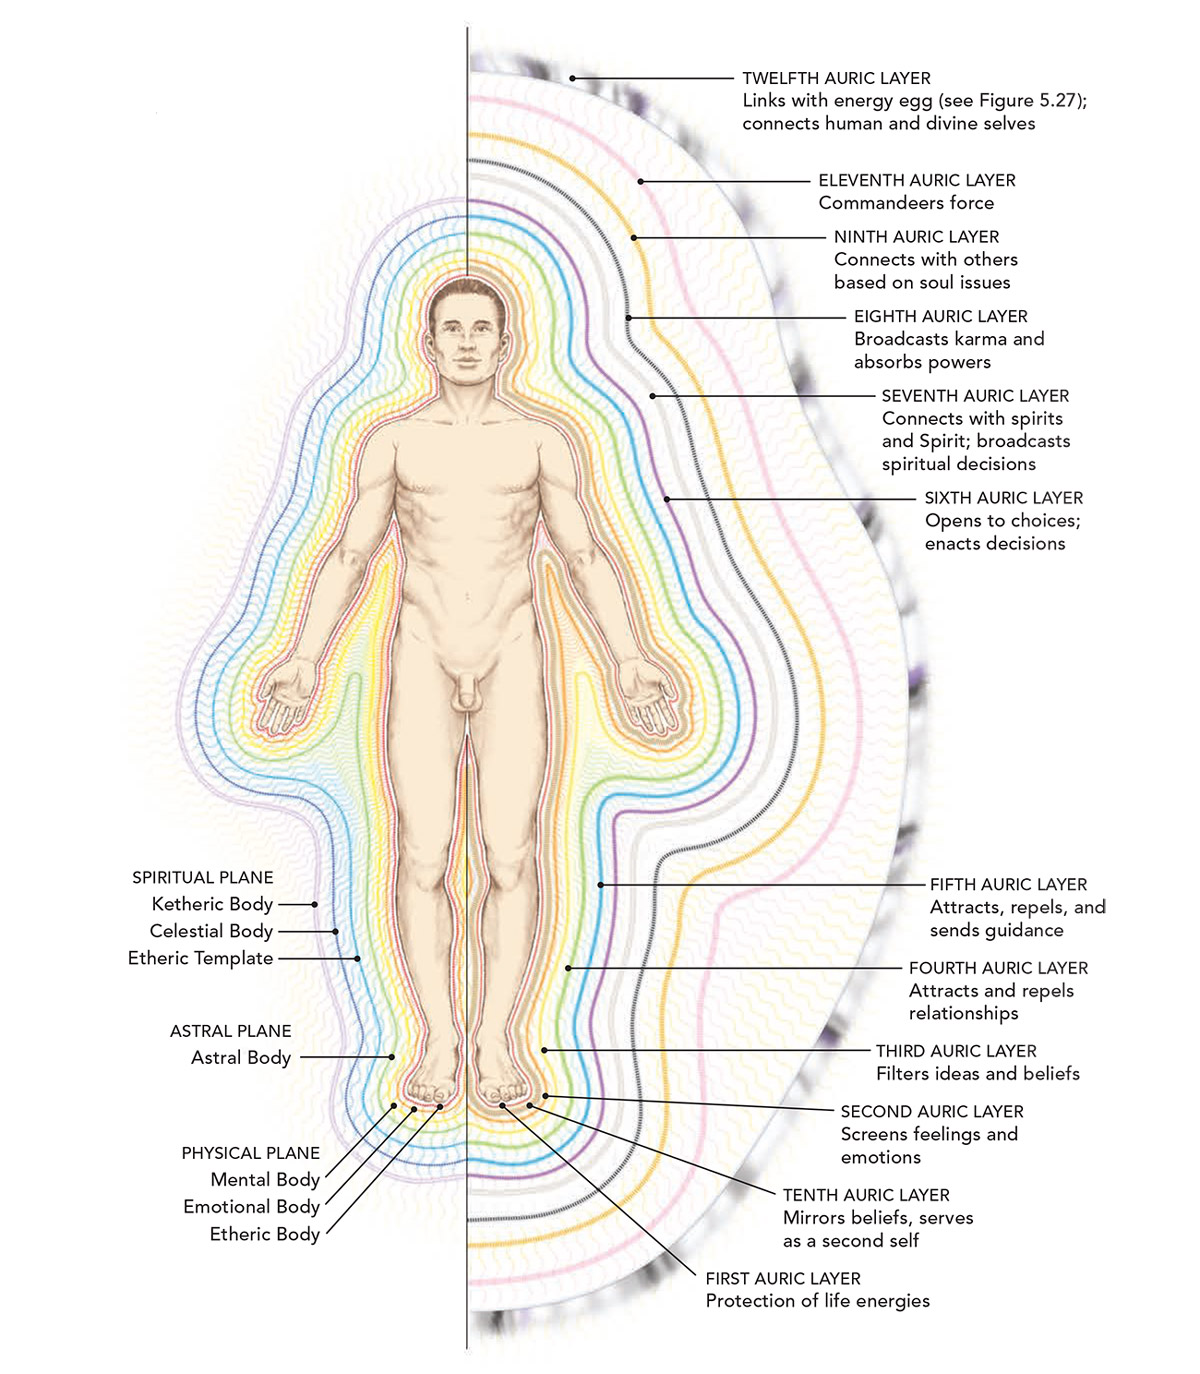 A Complete Guide to the Human Energy Fields and Auric Body